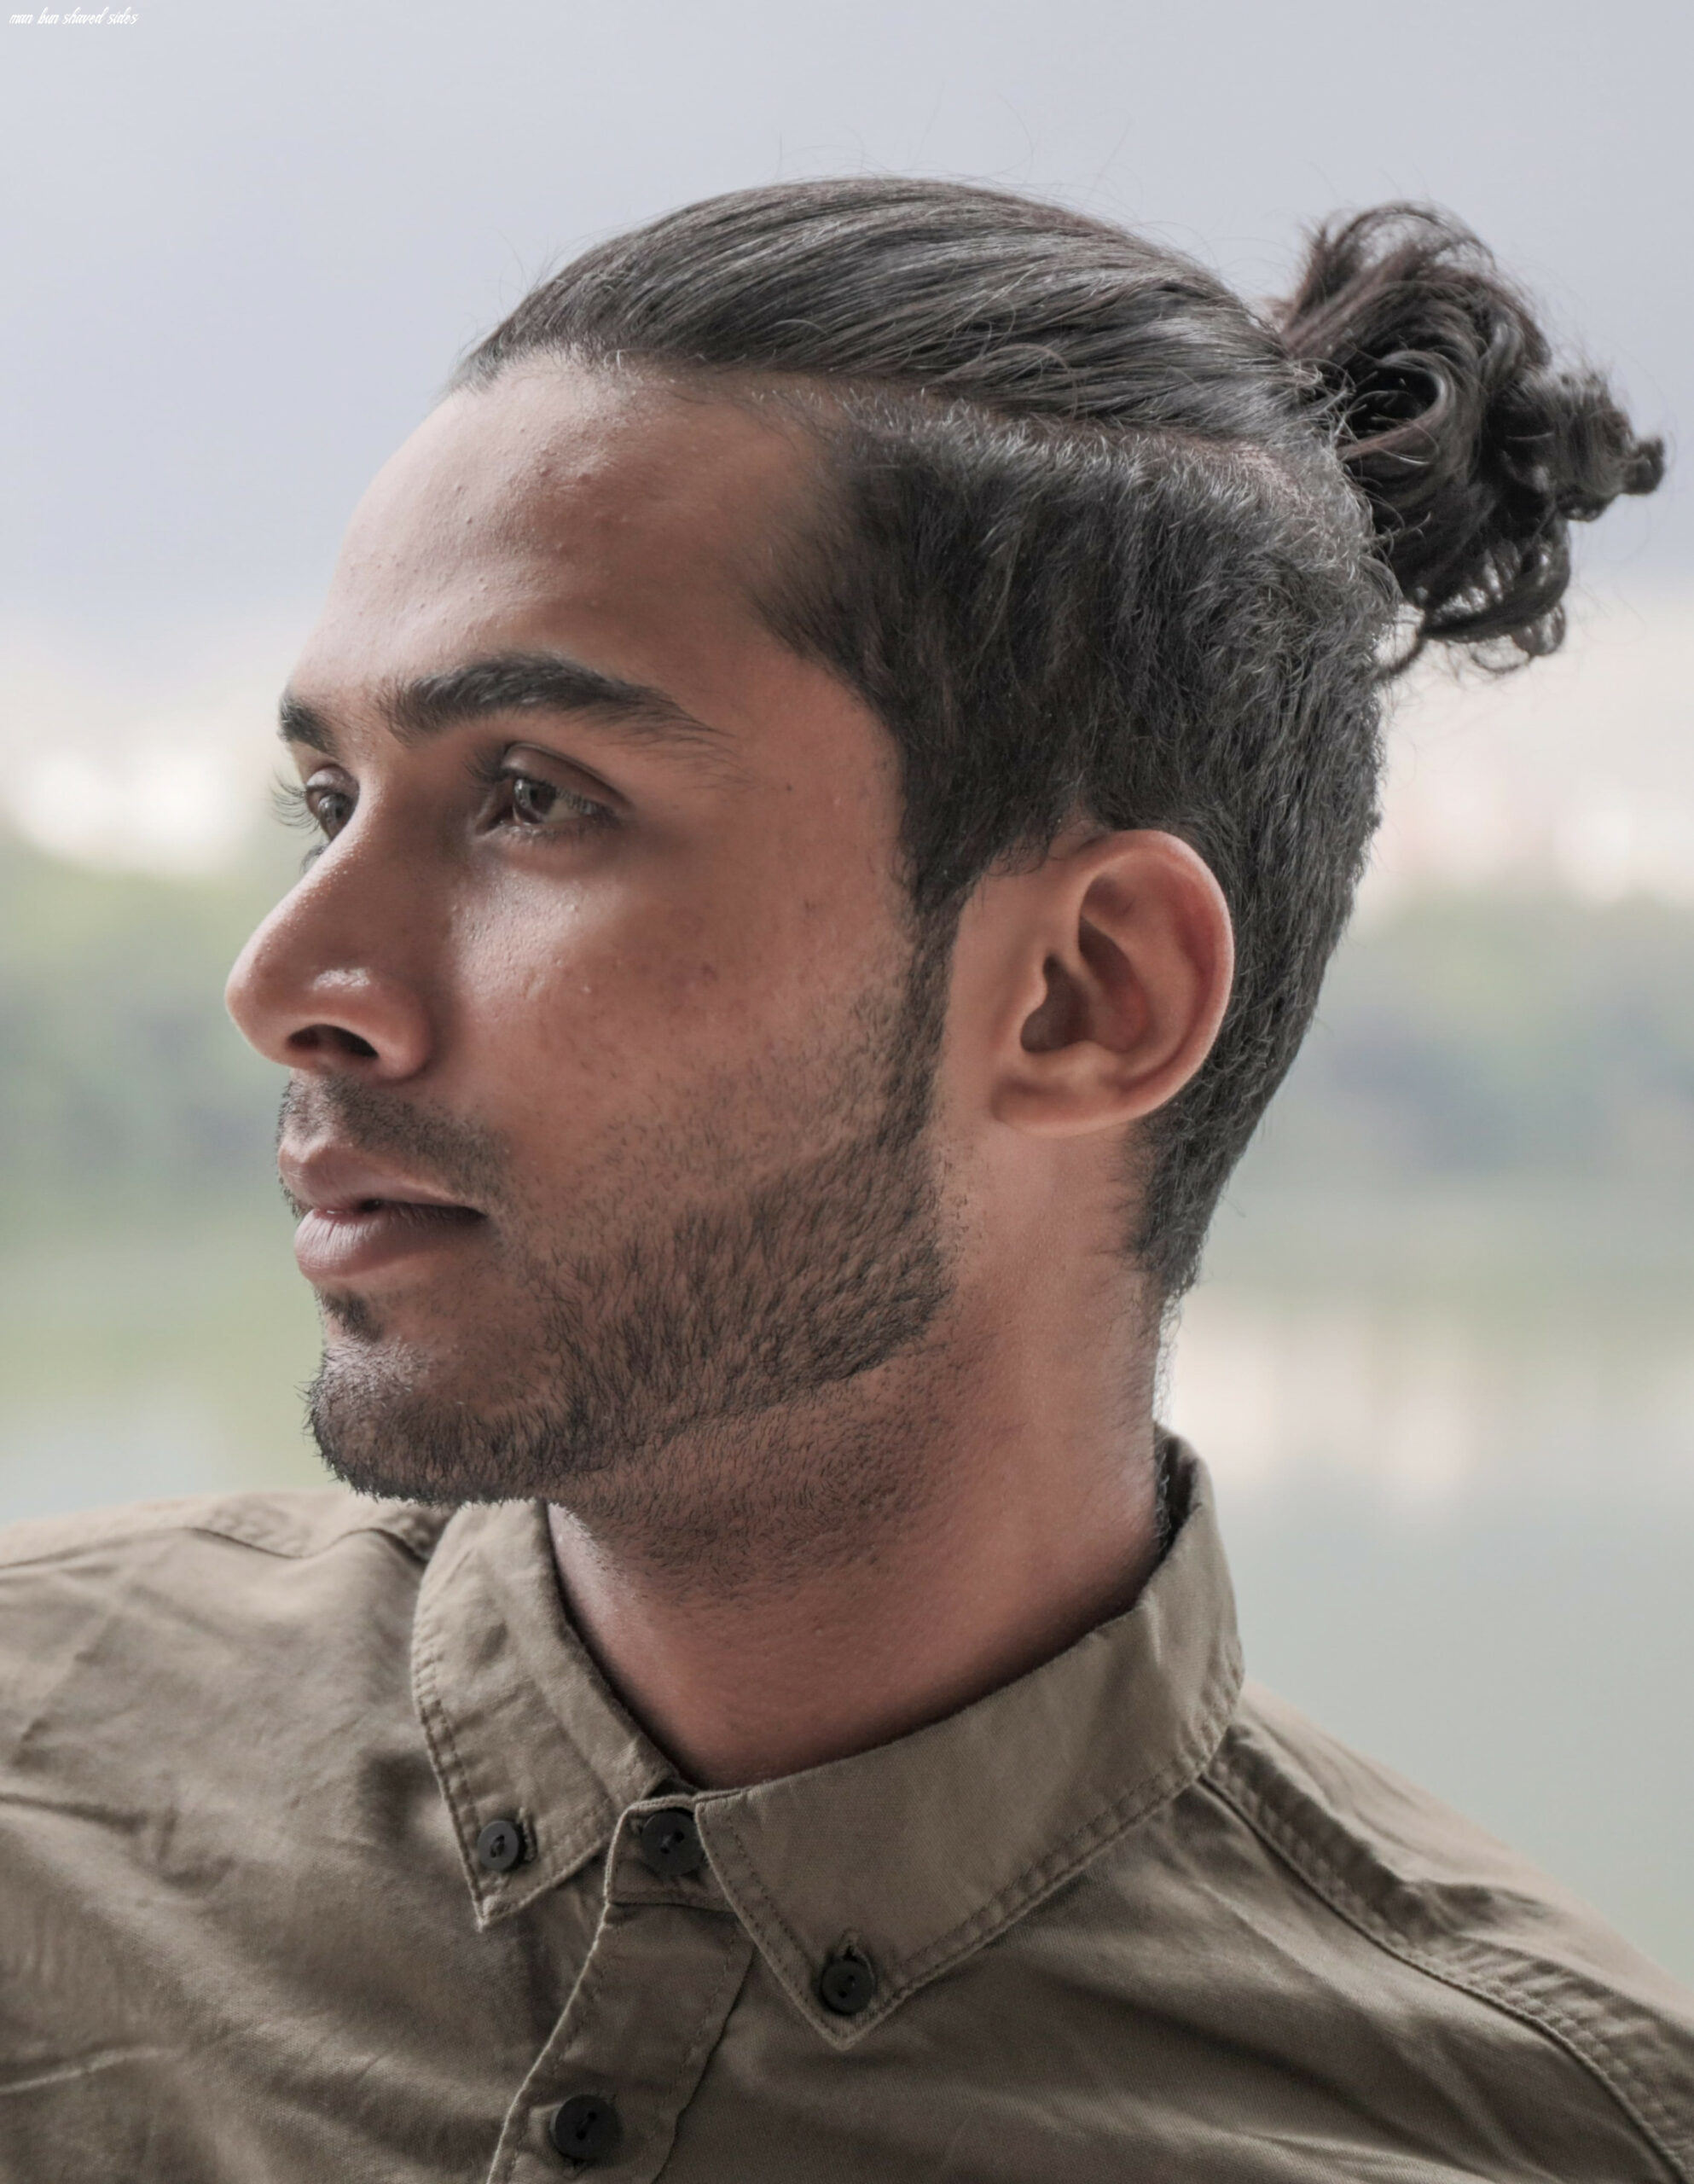 The top knot hairstyle visual guide for men (10 different styles) man bun shaved sides